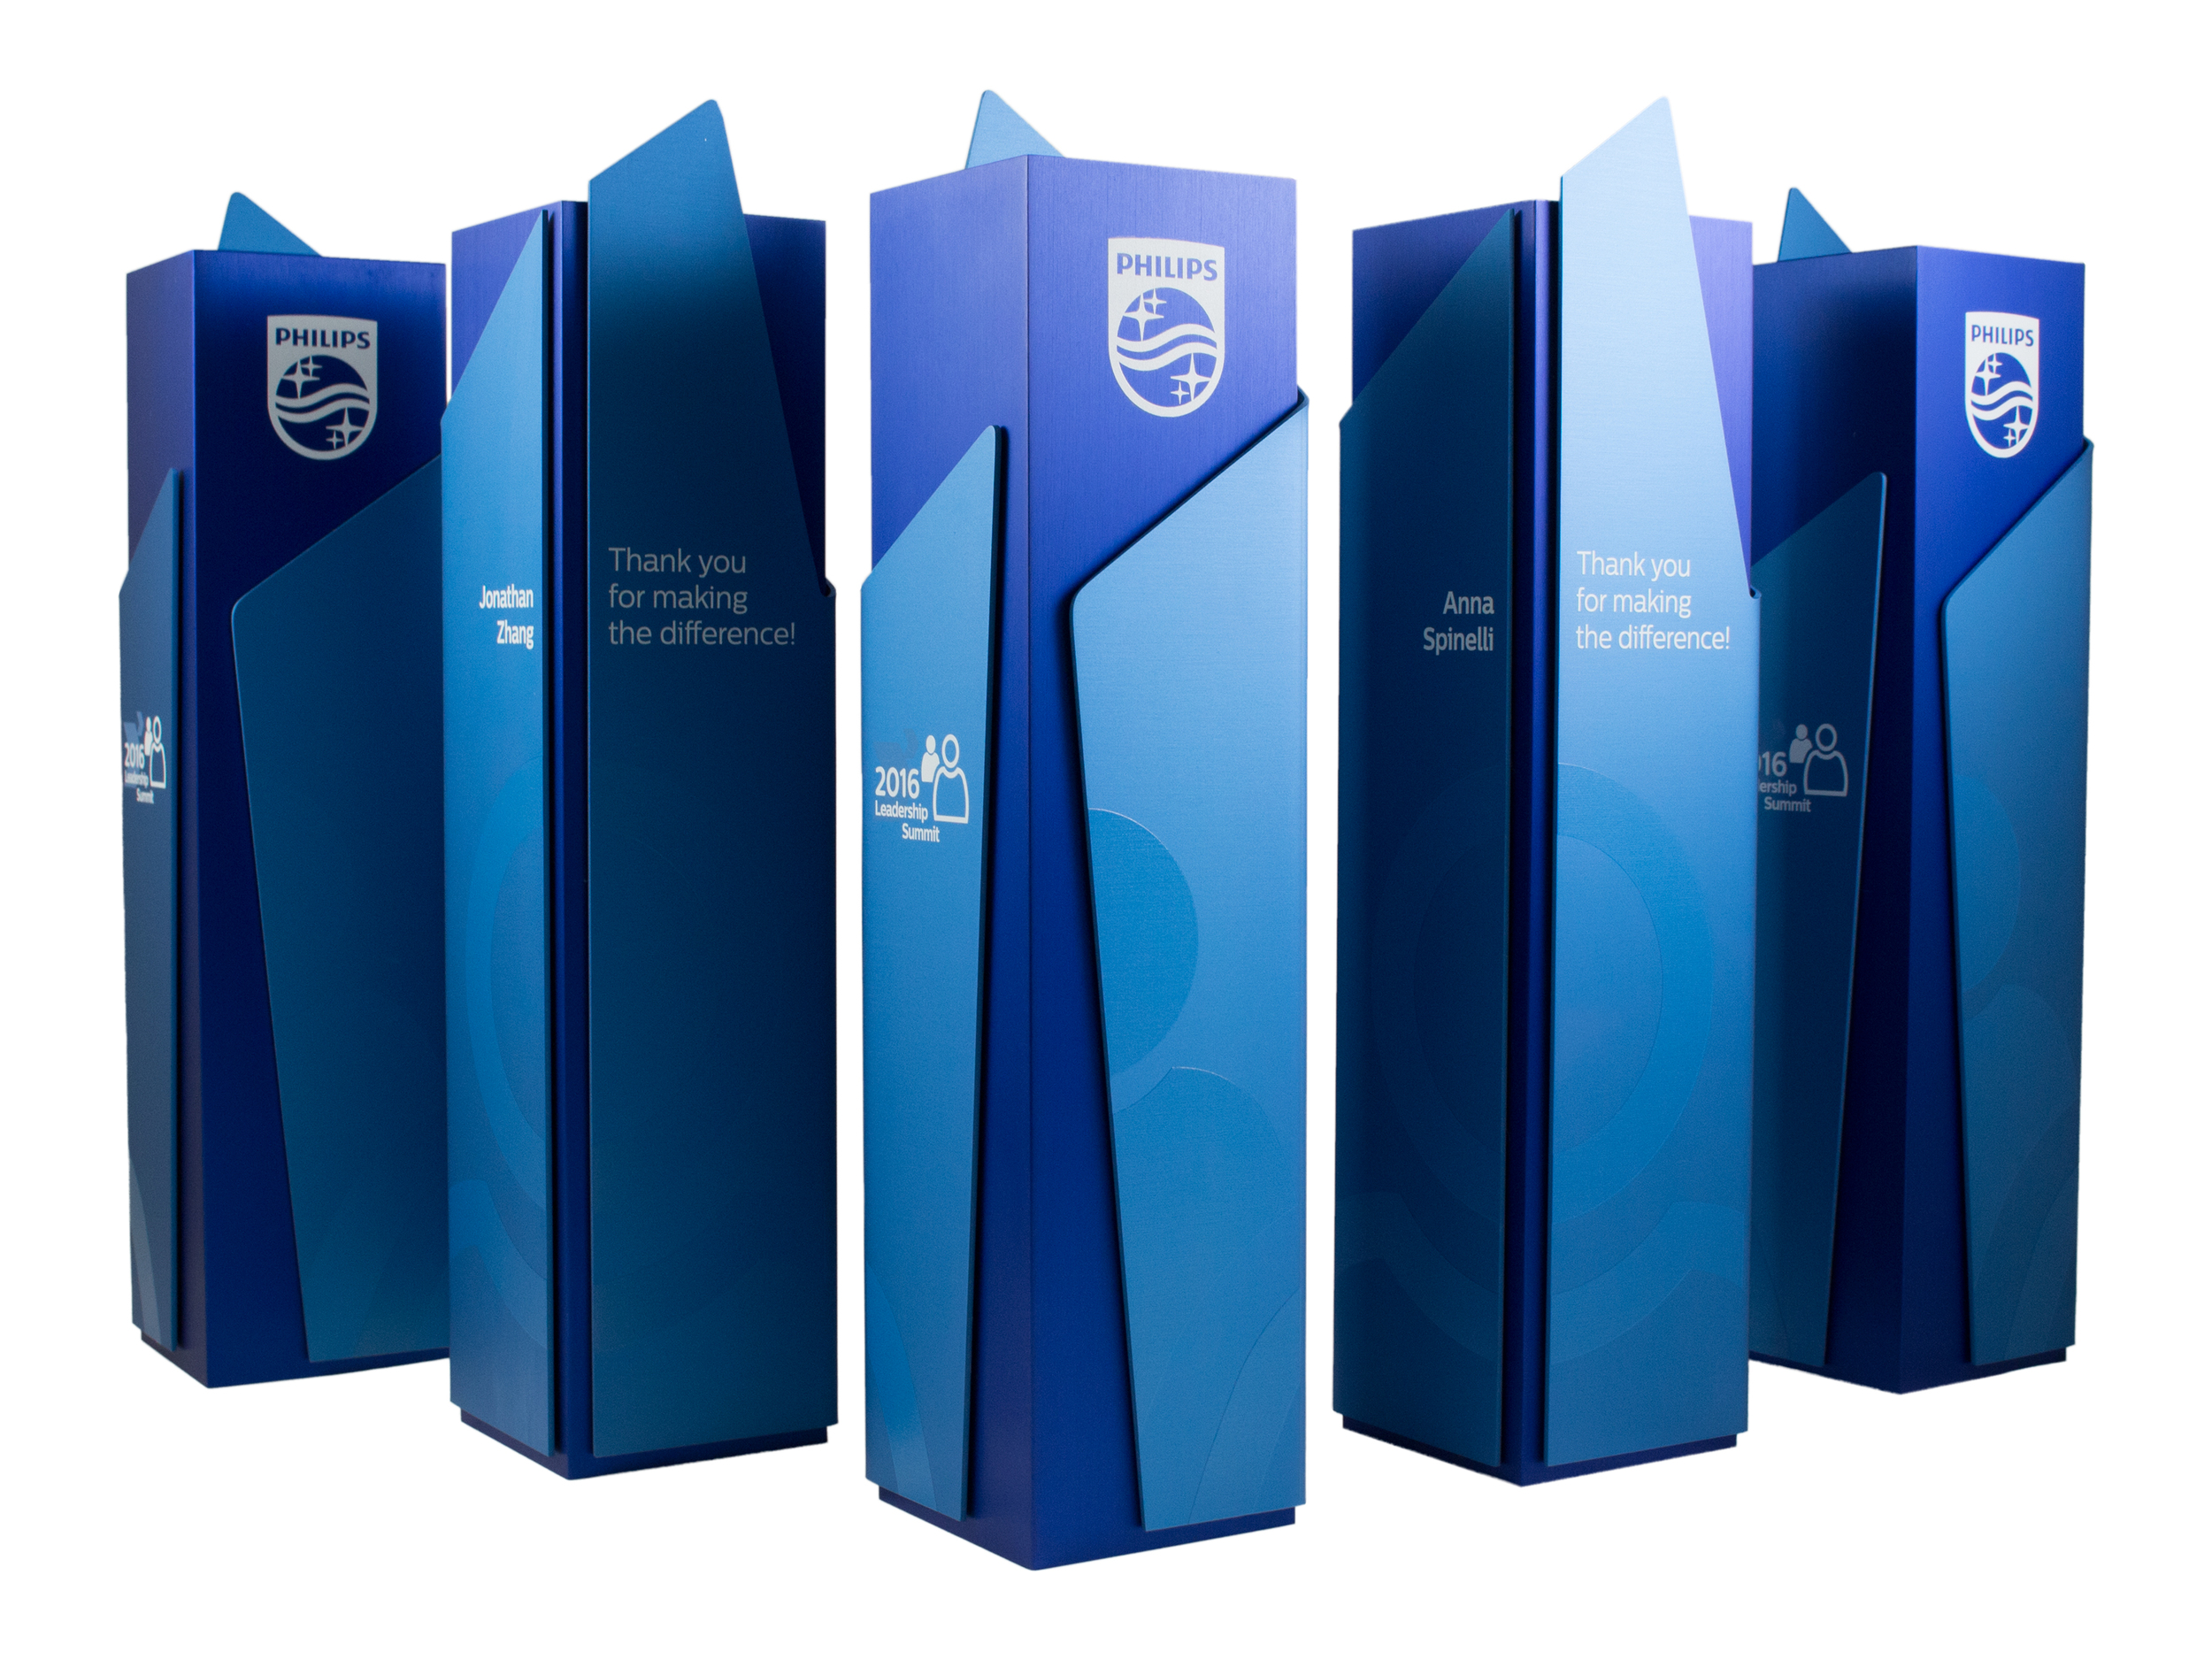 philips leadership awards conference gifts netherlands